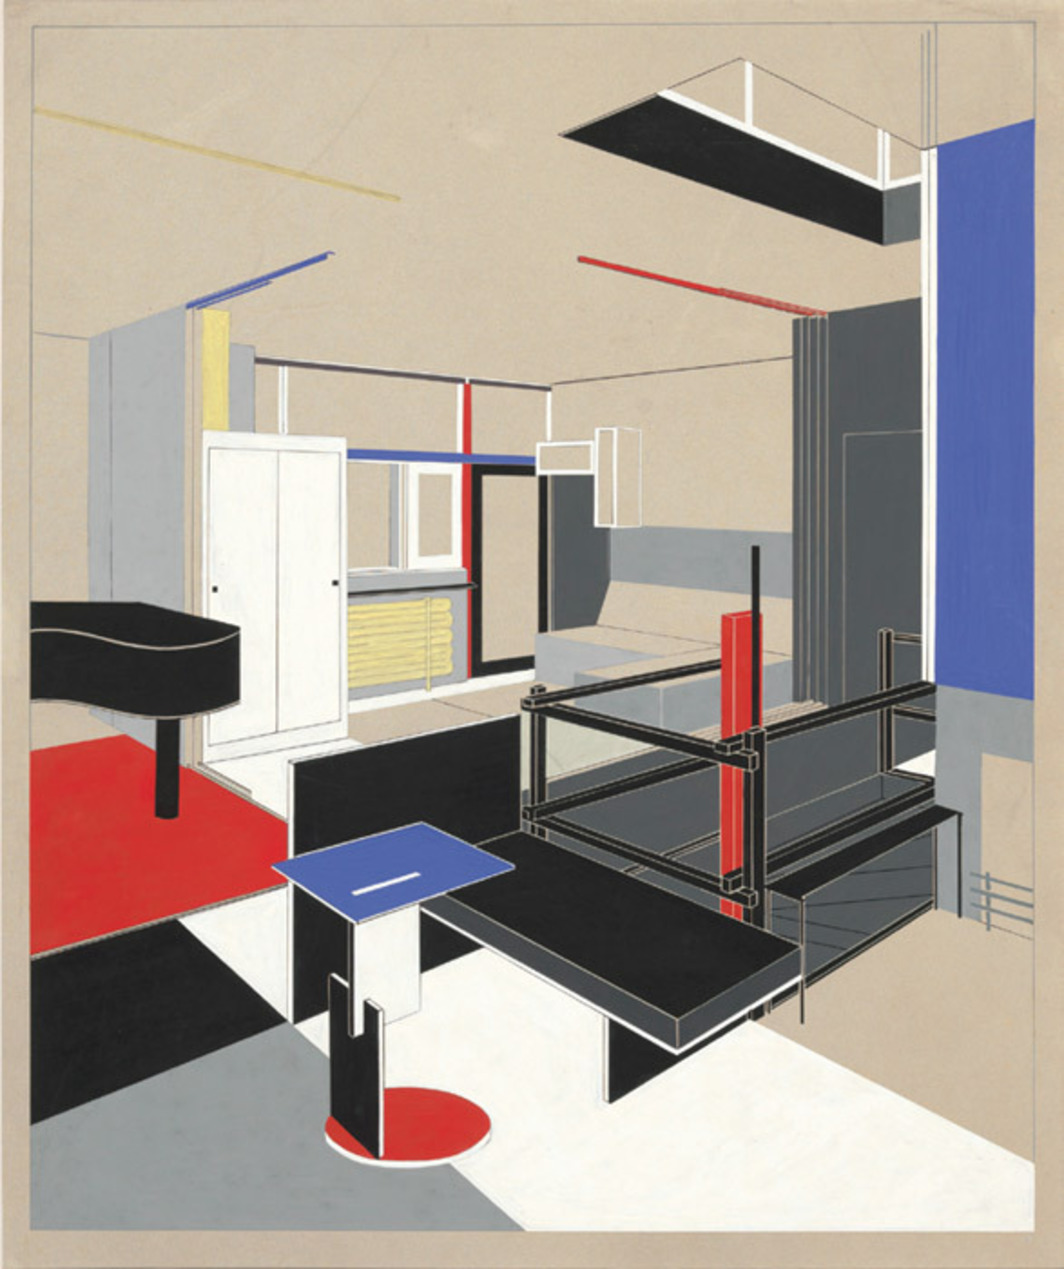 "Gerrit Rietveld, Rietveld-Schröder House, 1924, Utrecht, the Netherlands, rendering showing girl's sleeping area, 1951, collotype on paper, 19 1/4 x 25 1/2""."